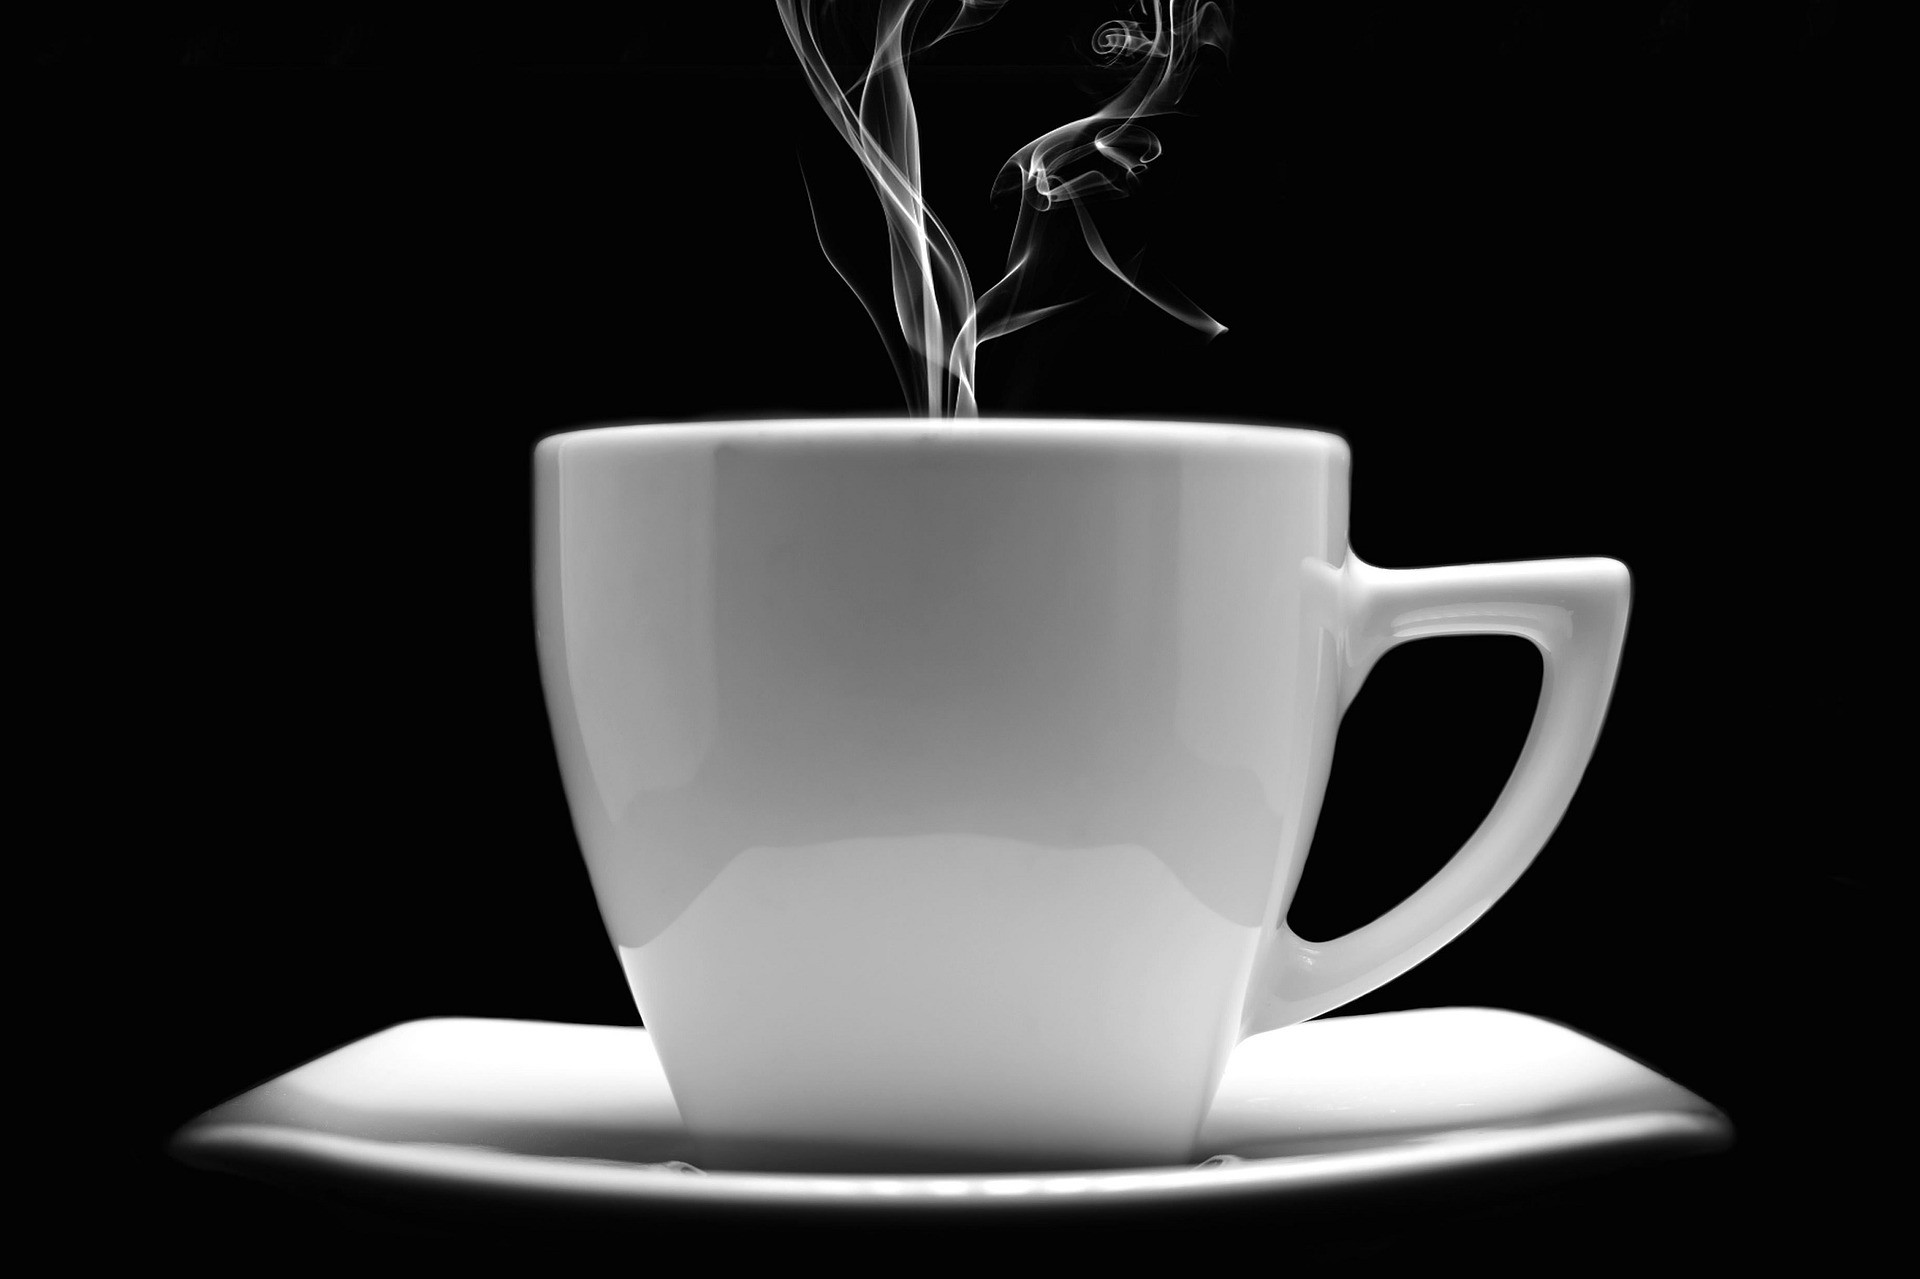 cup-of-coffee-2275793_1920